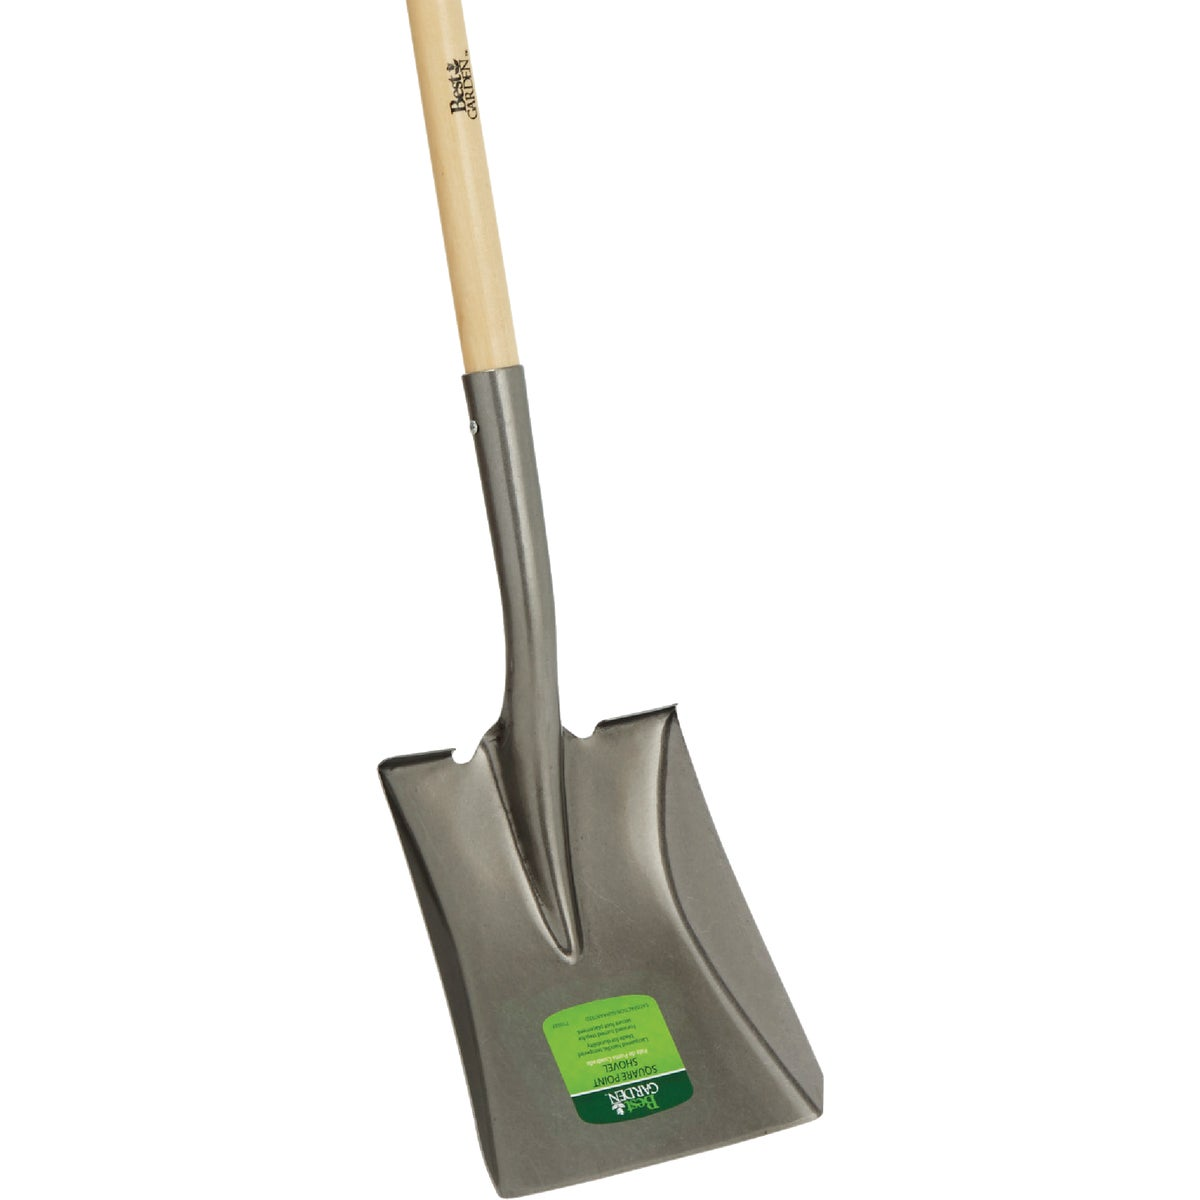 LONG HDL SQ PT SHOVEL - 710537 by Do it Best